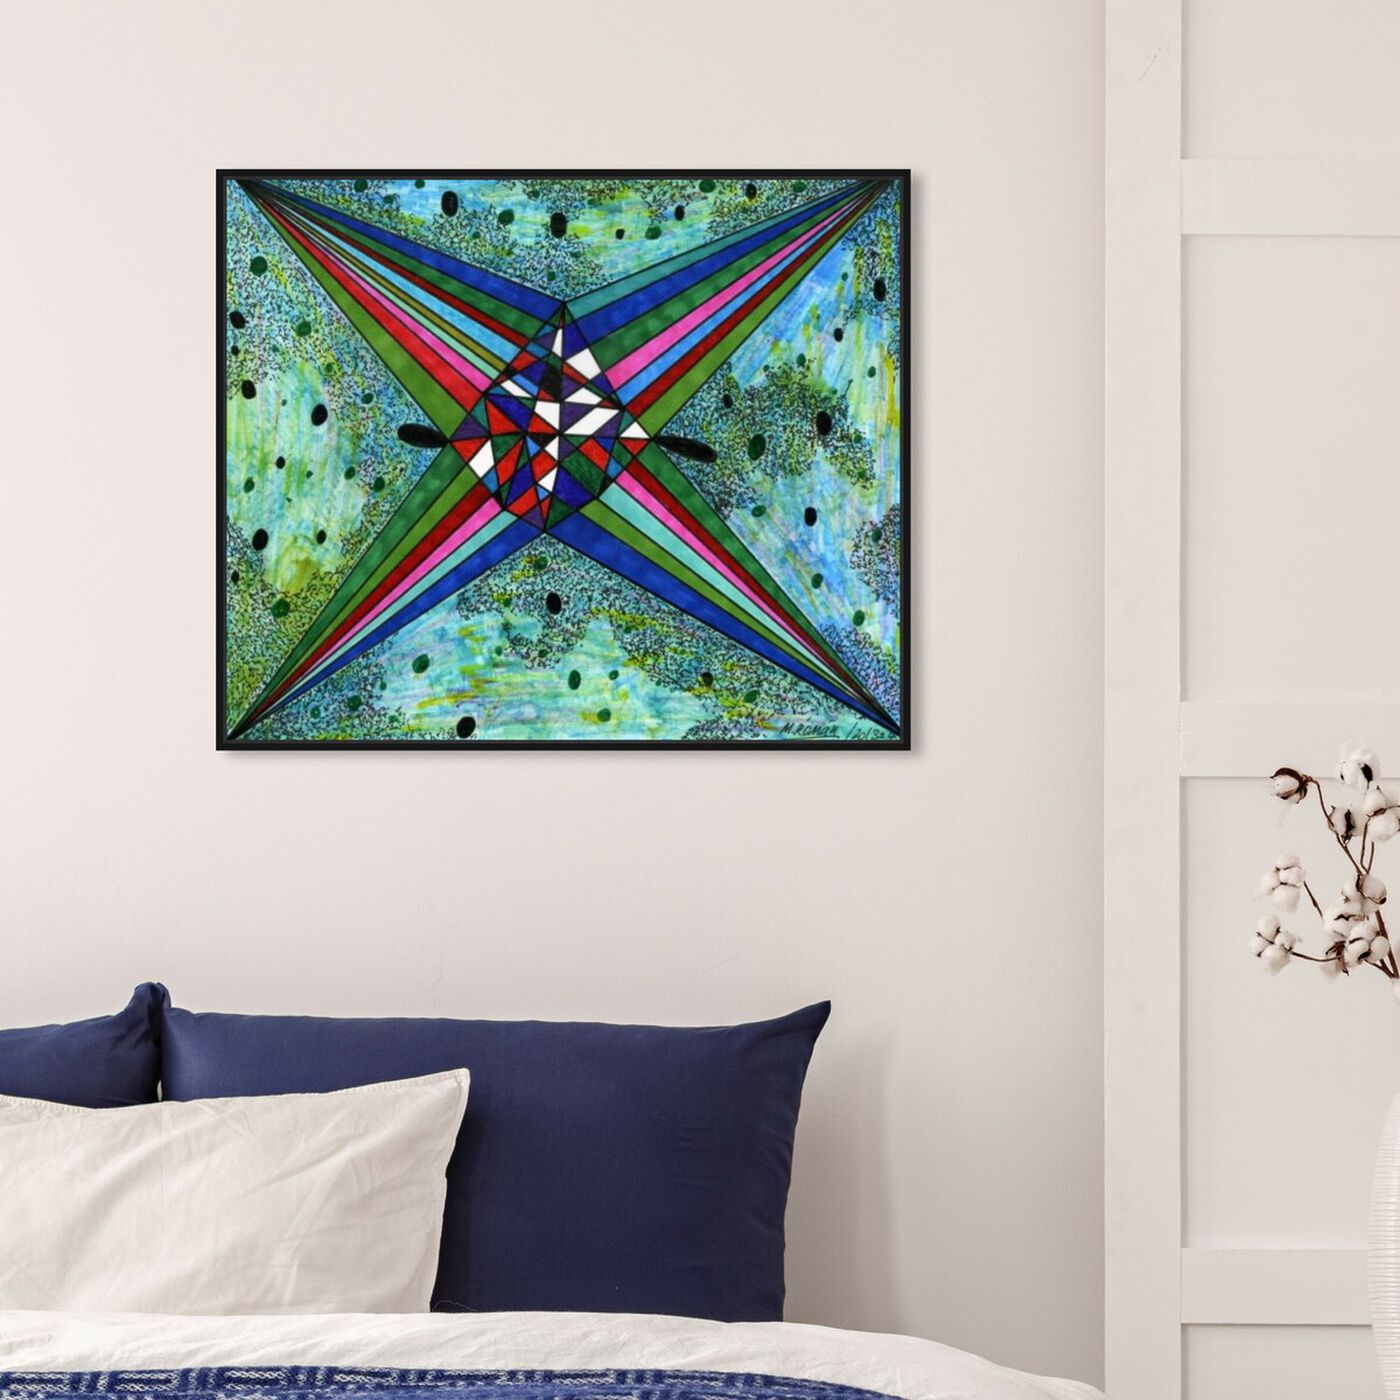 Hanging view of Intergalactica featuring abstract and geometric art.